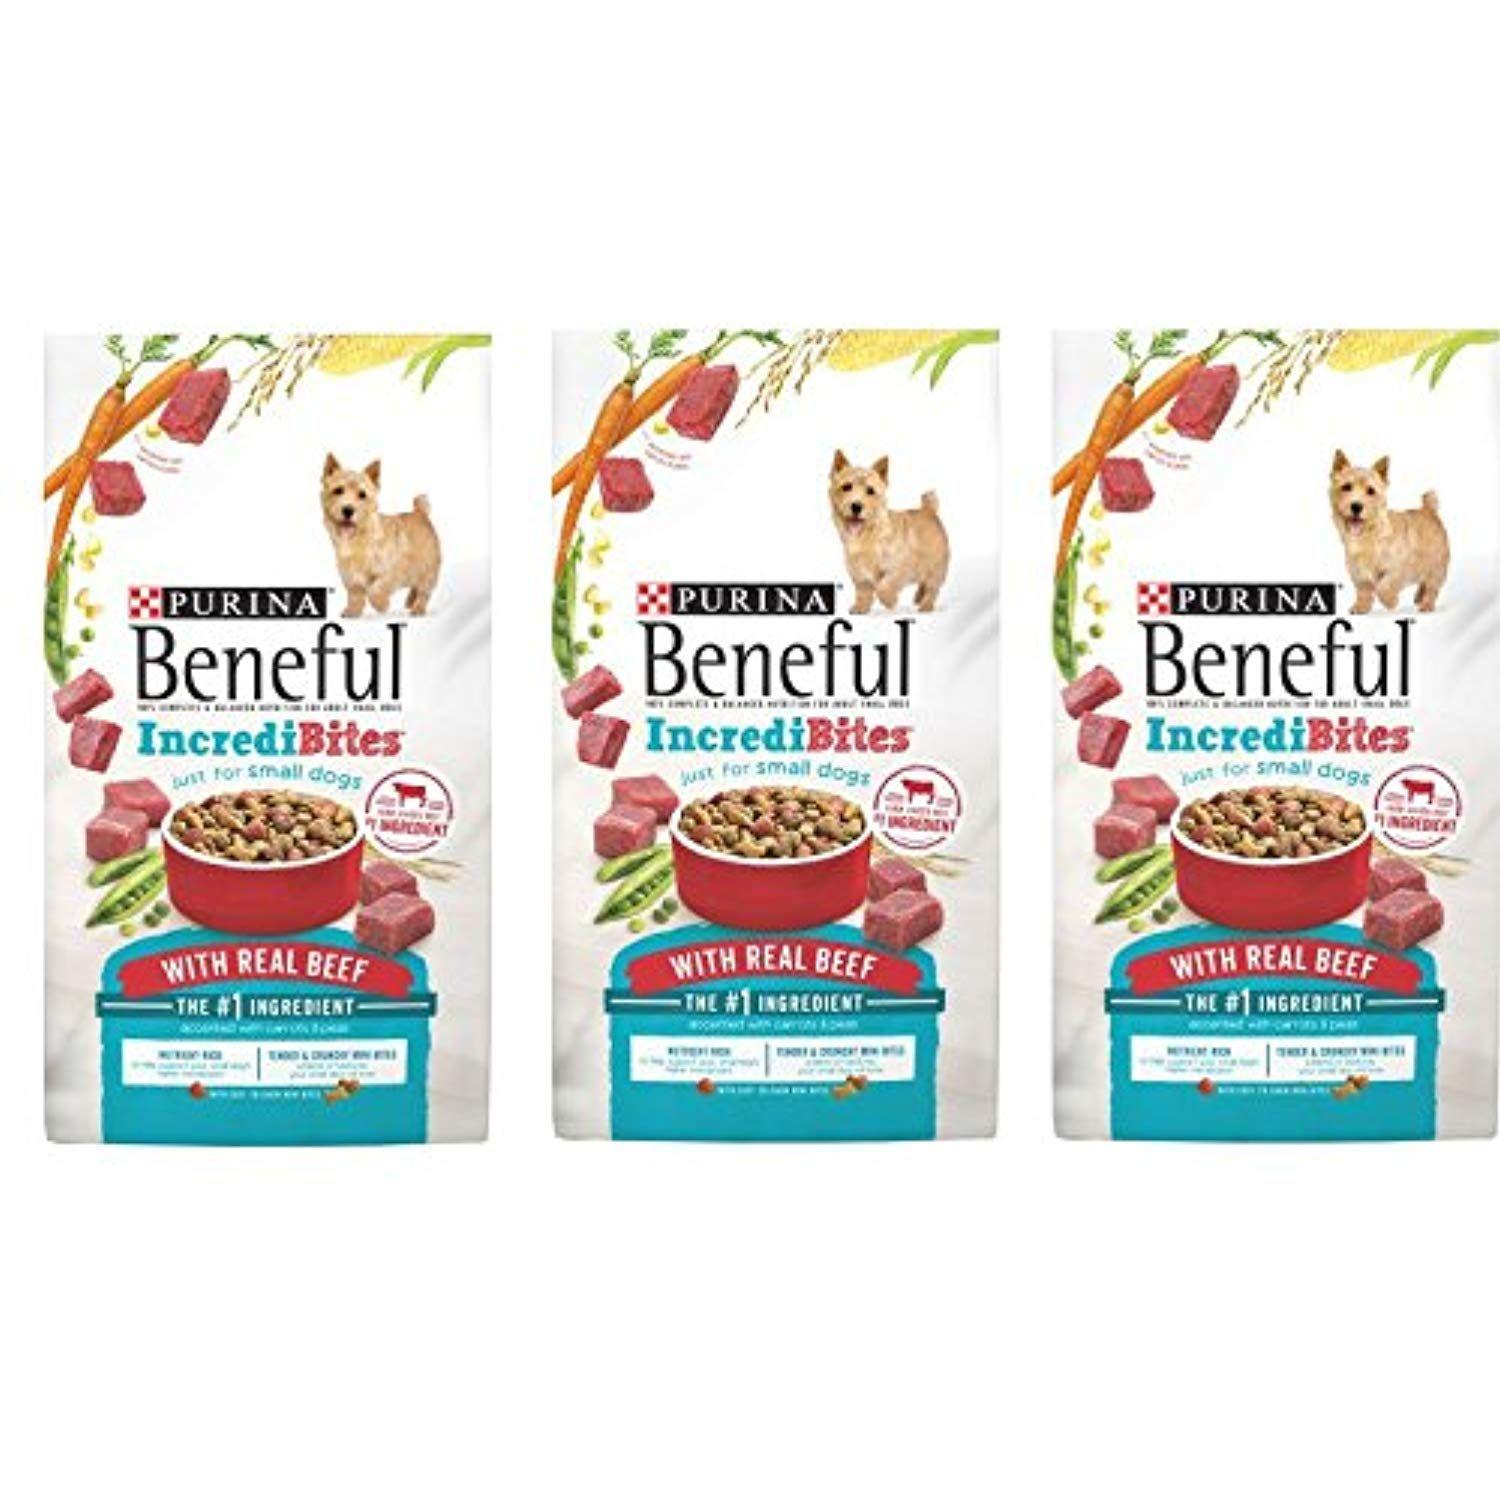 Purina Beneful Incredibites With Real Beef Adult Dry Dog Food